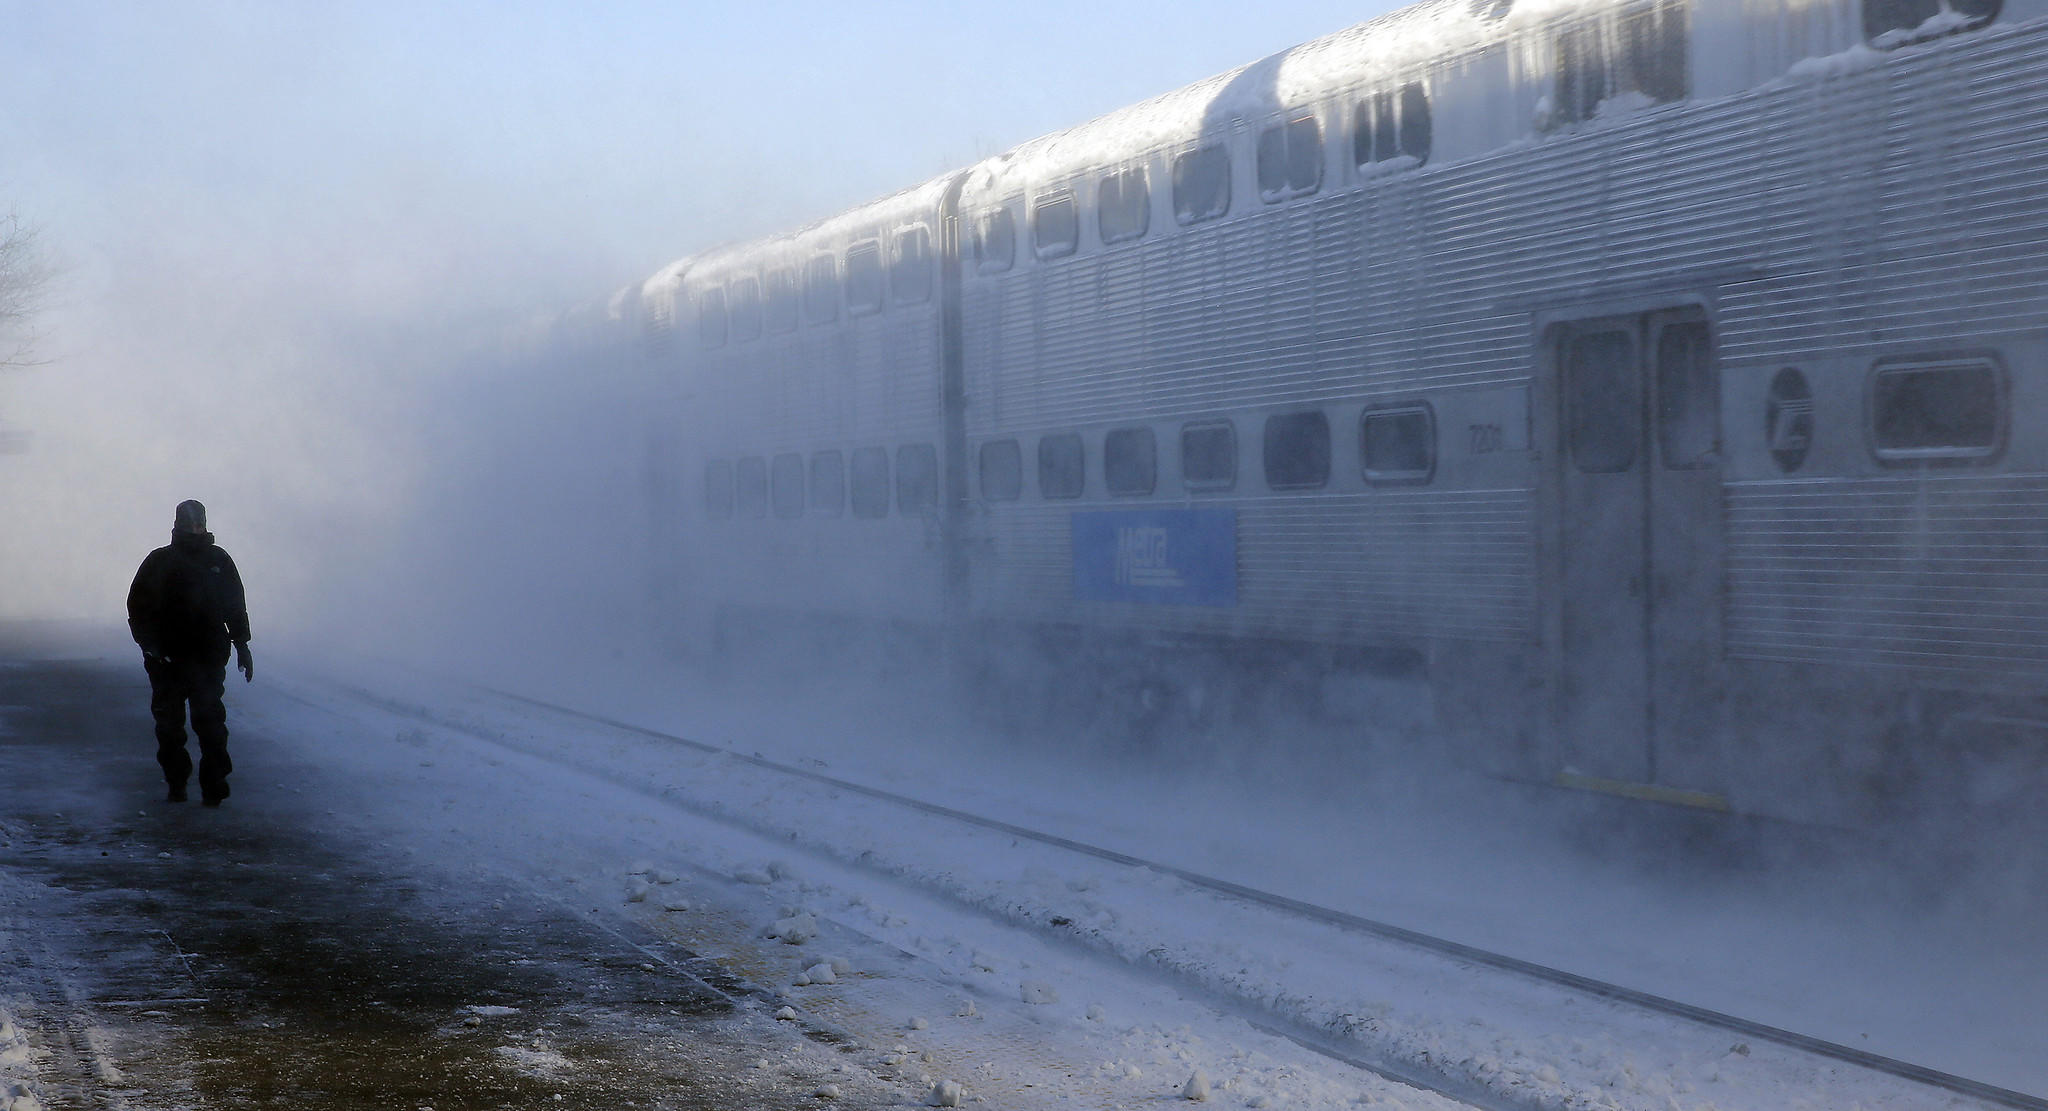 An express Metra train creates a cloud of snow as it passes the La Grange Road station on Monday.